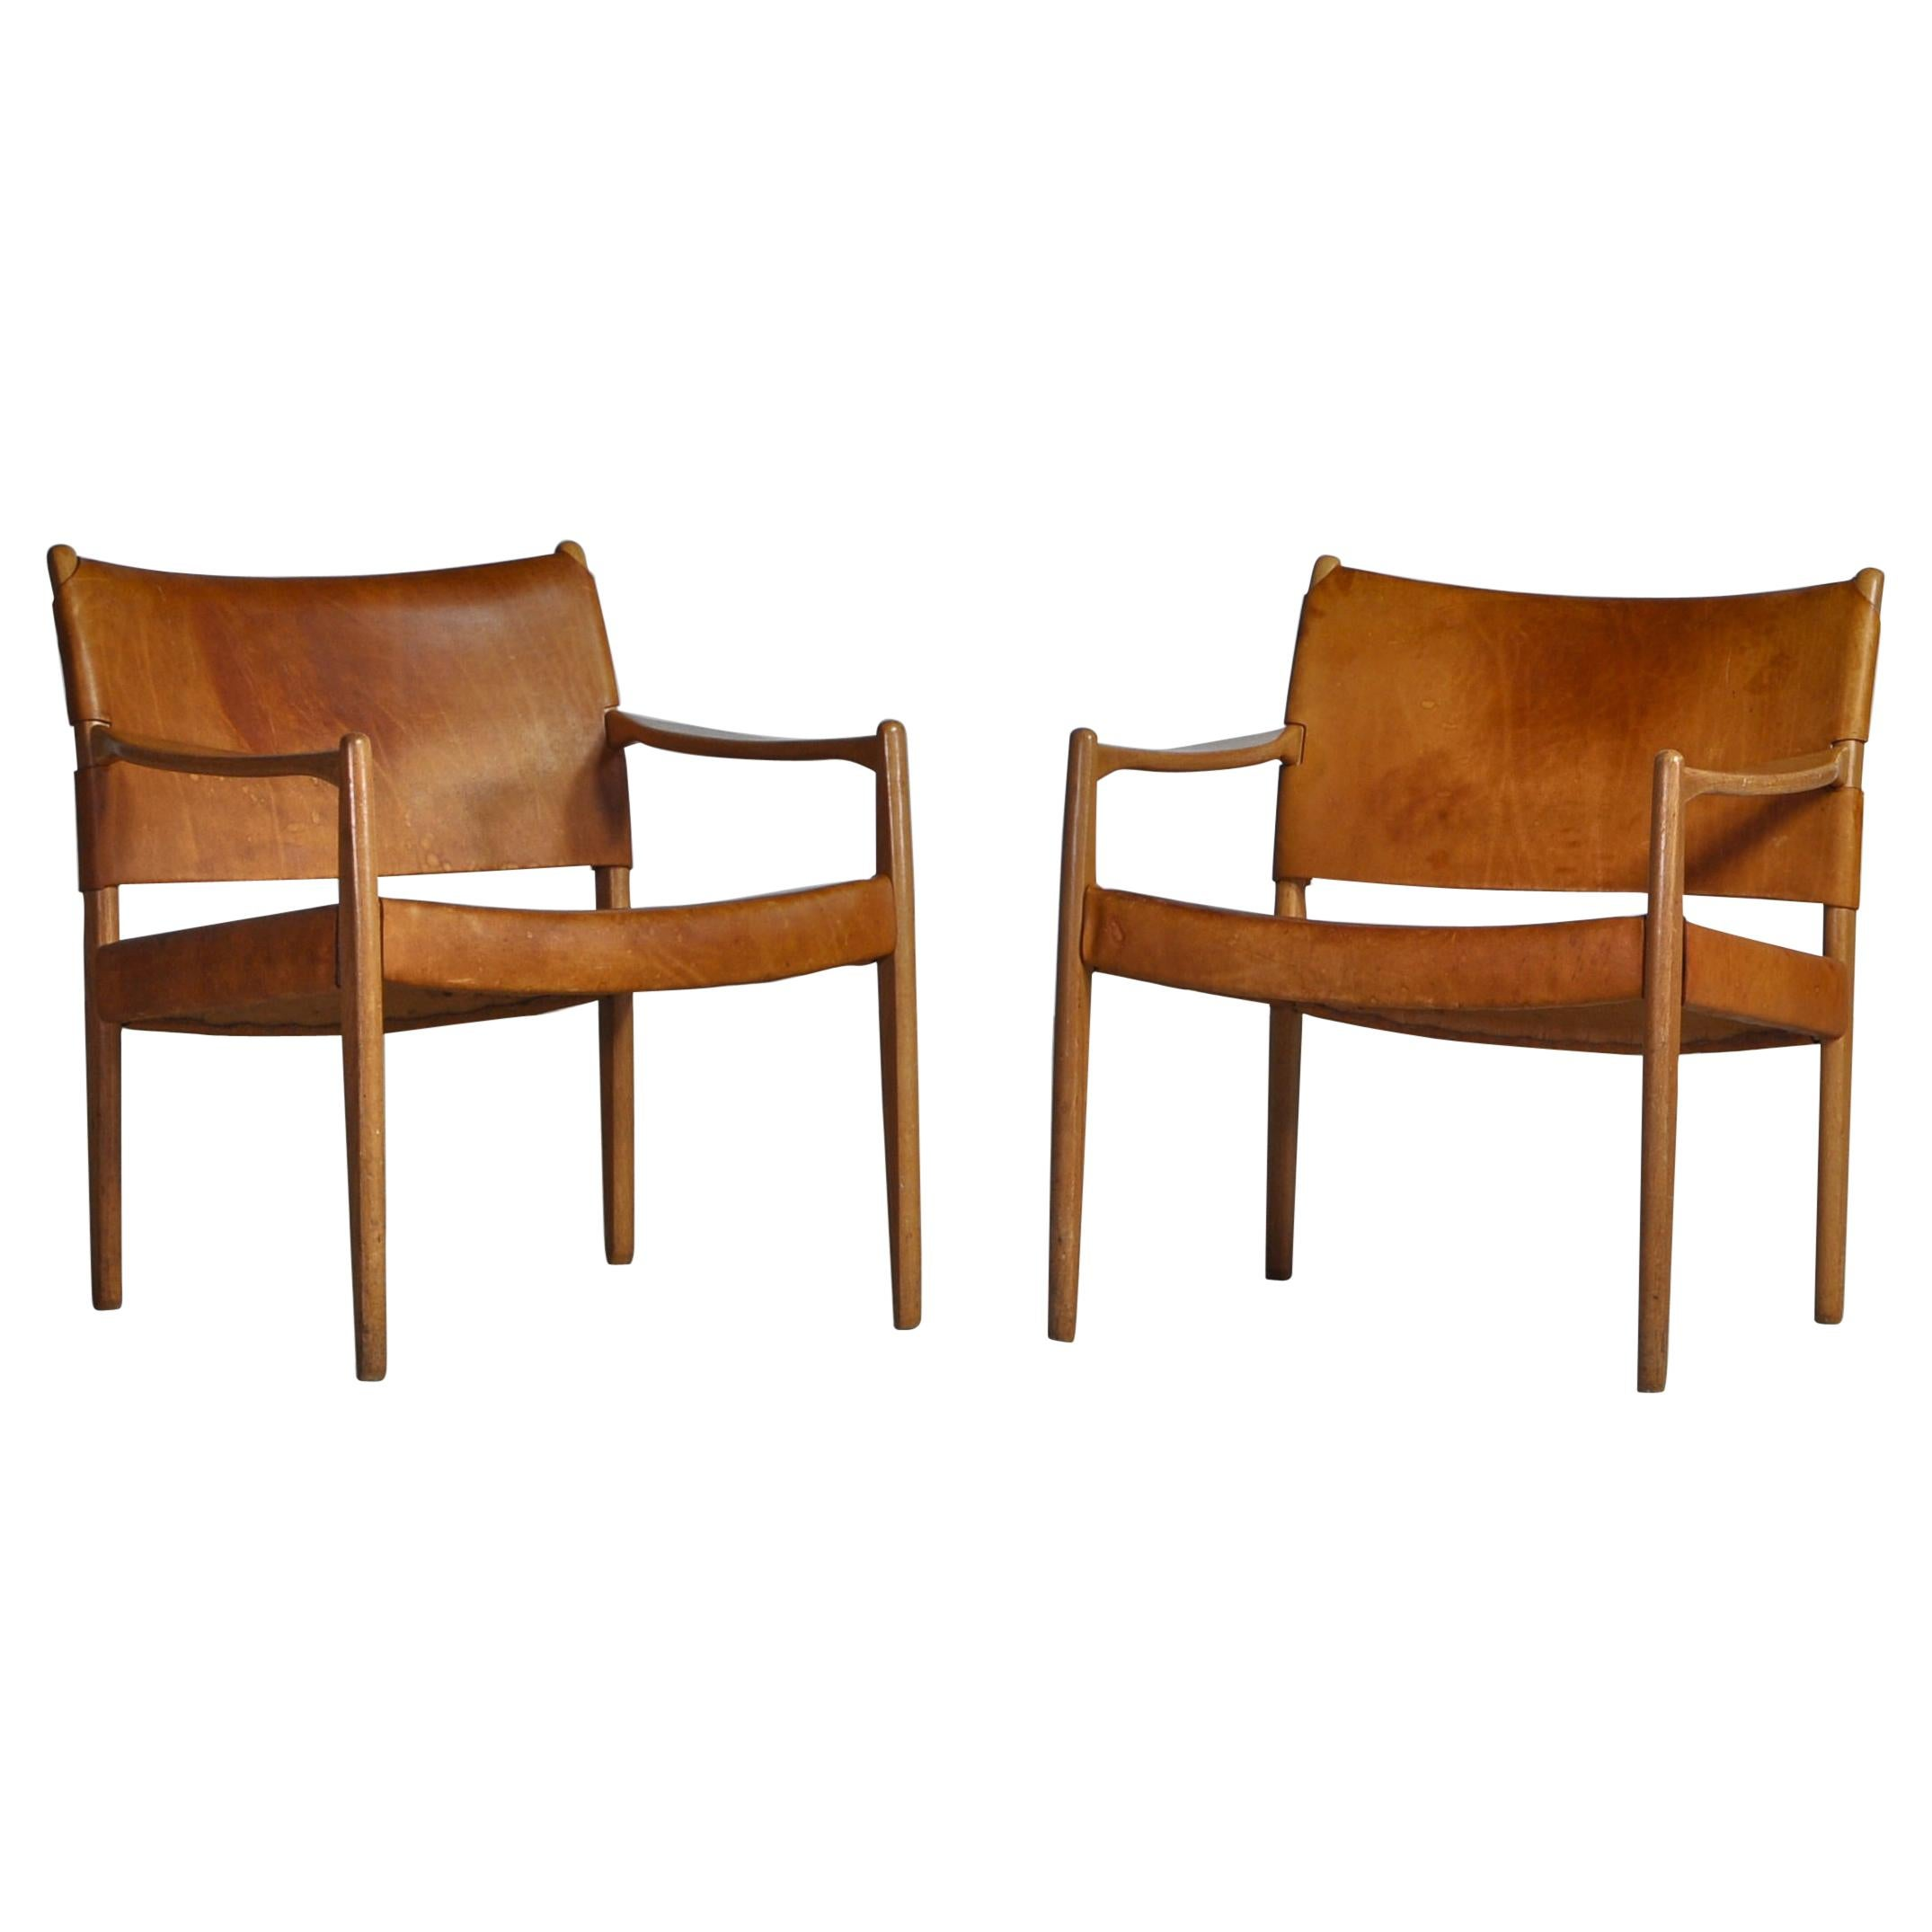 "Scandinavian Modern Armchairs ""Premiär-69"" by Per-Olof Scotte for IKEA"